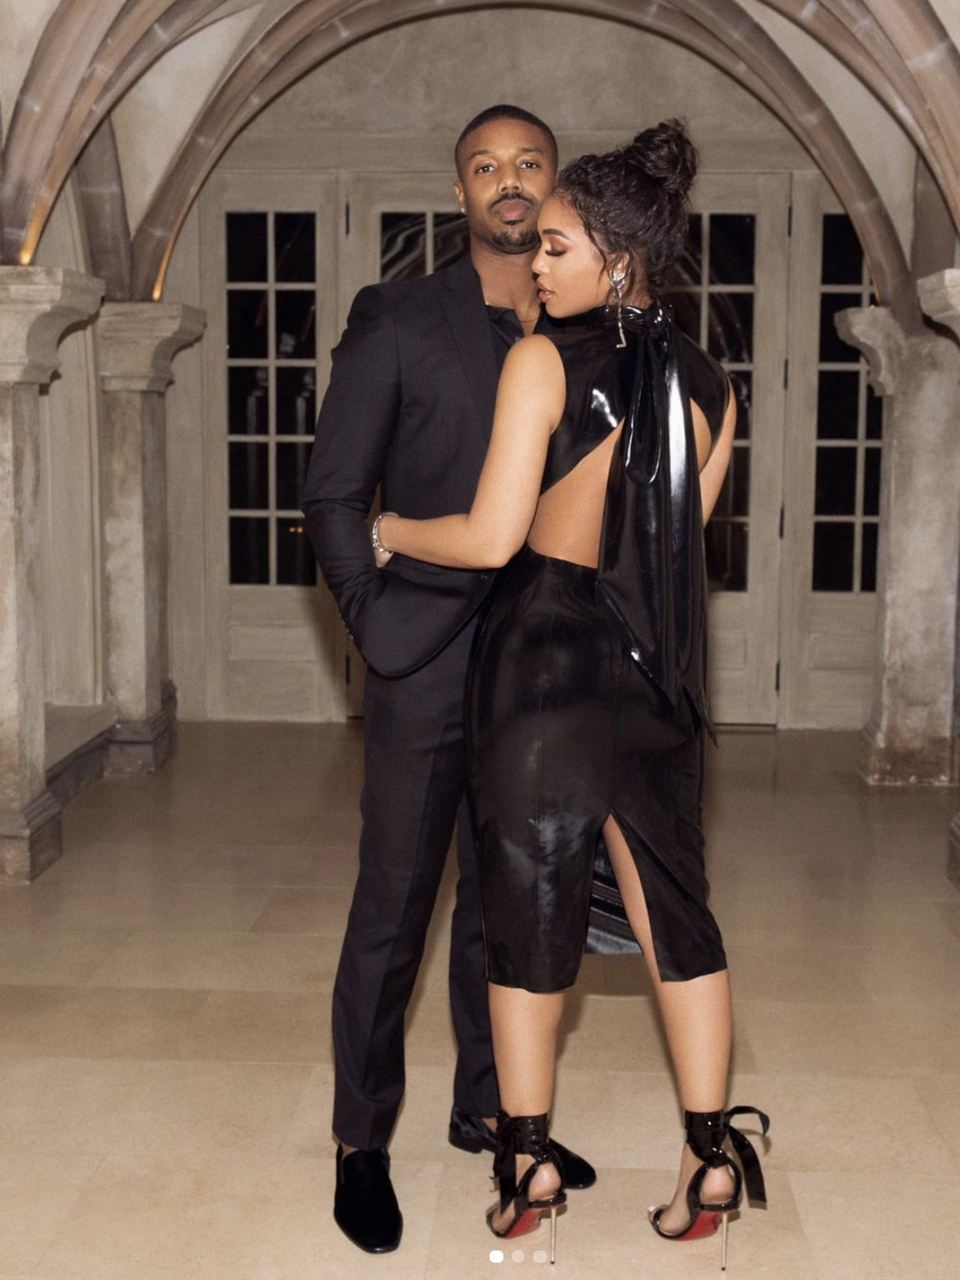 Steve Harvey Approves Of Michael B. Jordan and Lori Harvey's Love: 'He Is One Of The Nicest Guys'